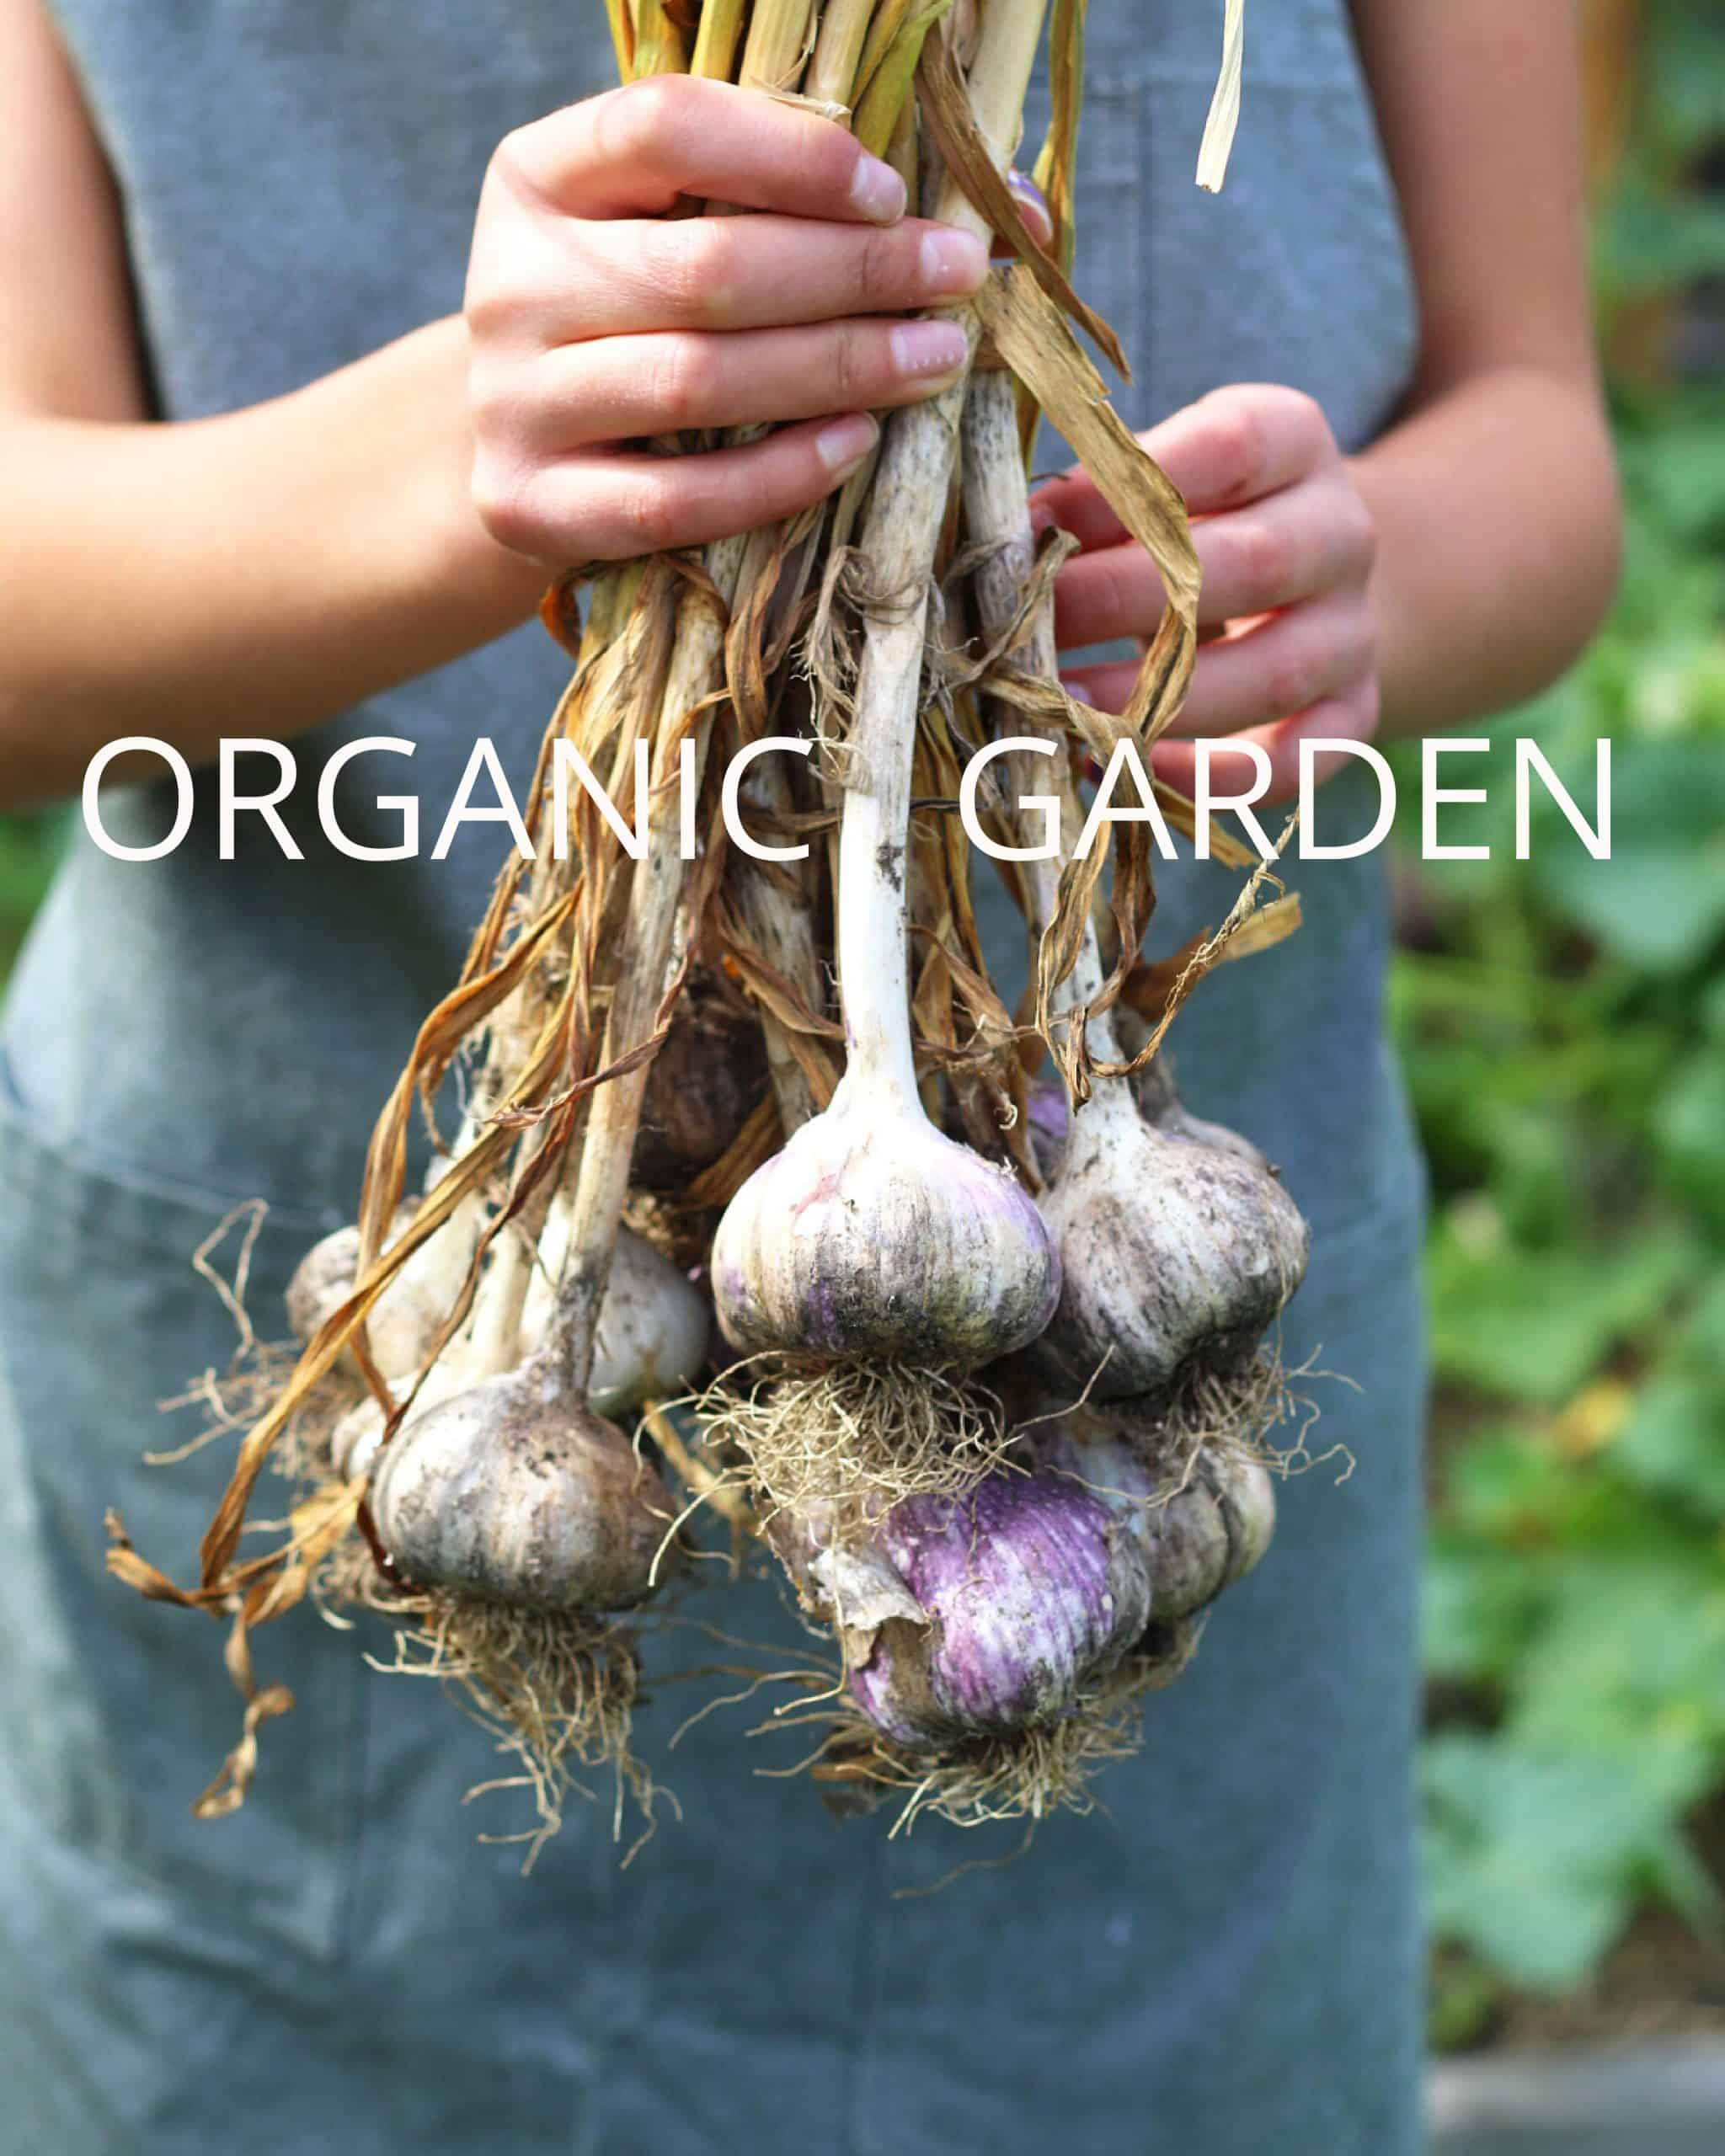 Holding a bunch of organic garlic